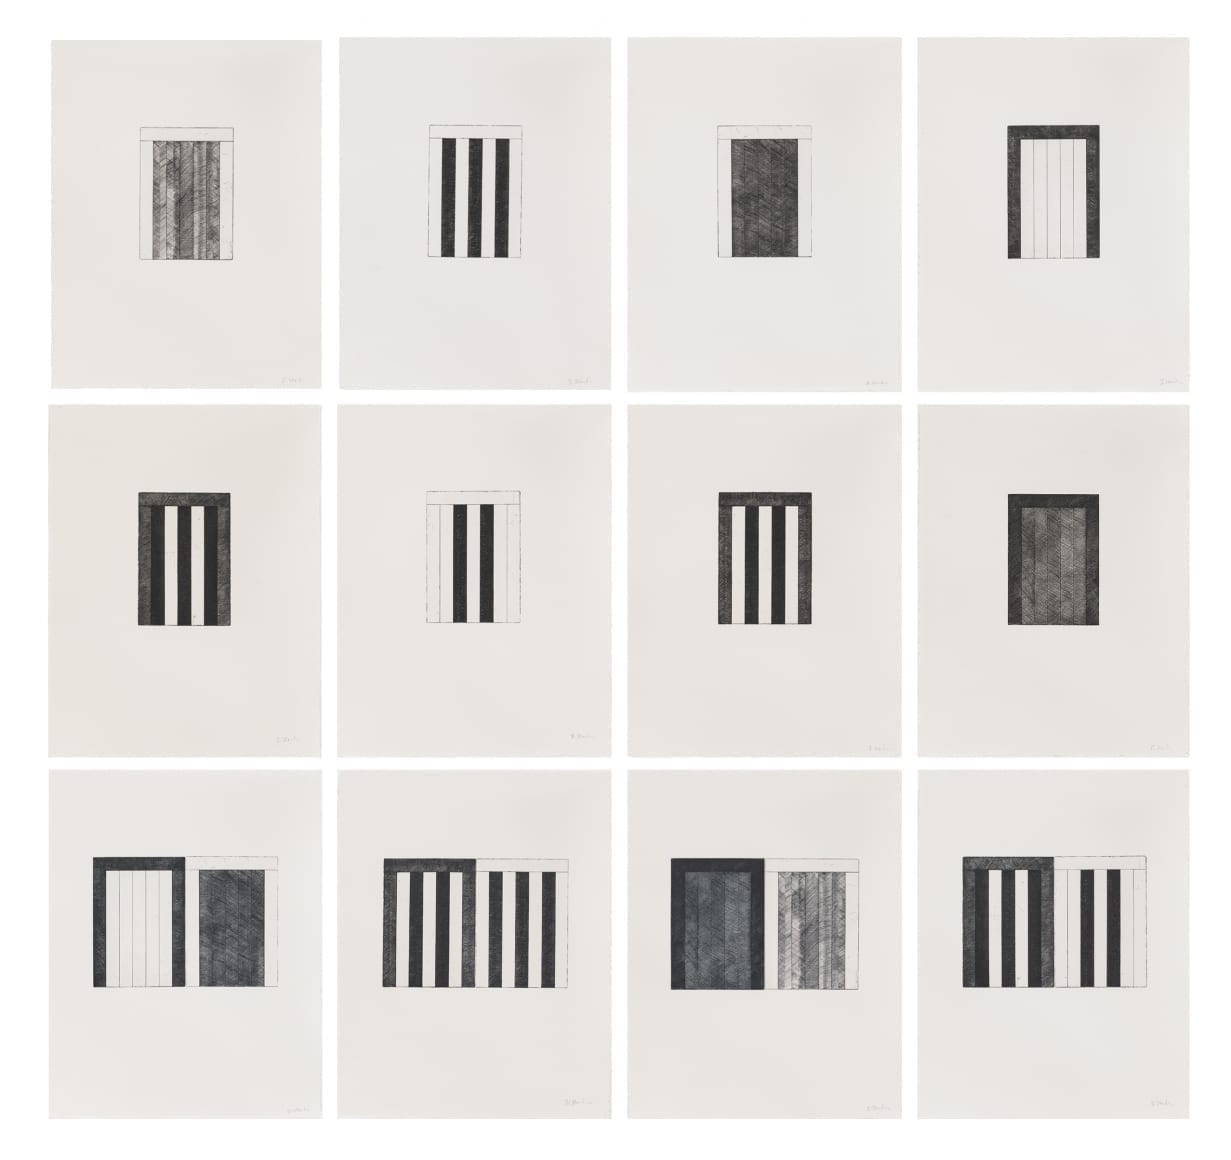 Brice Marden, 12 Views for Caroline Tatyana, 1977-79,Set of 12 etchings with aquatint